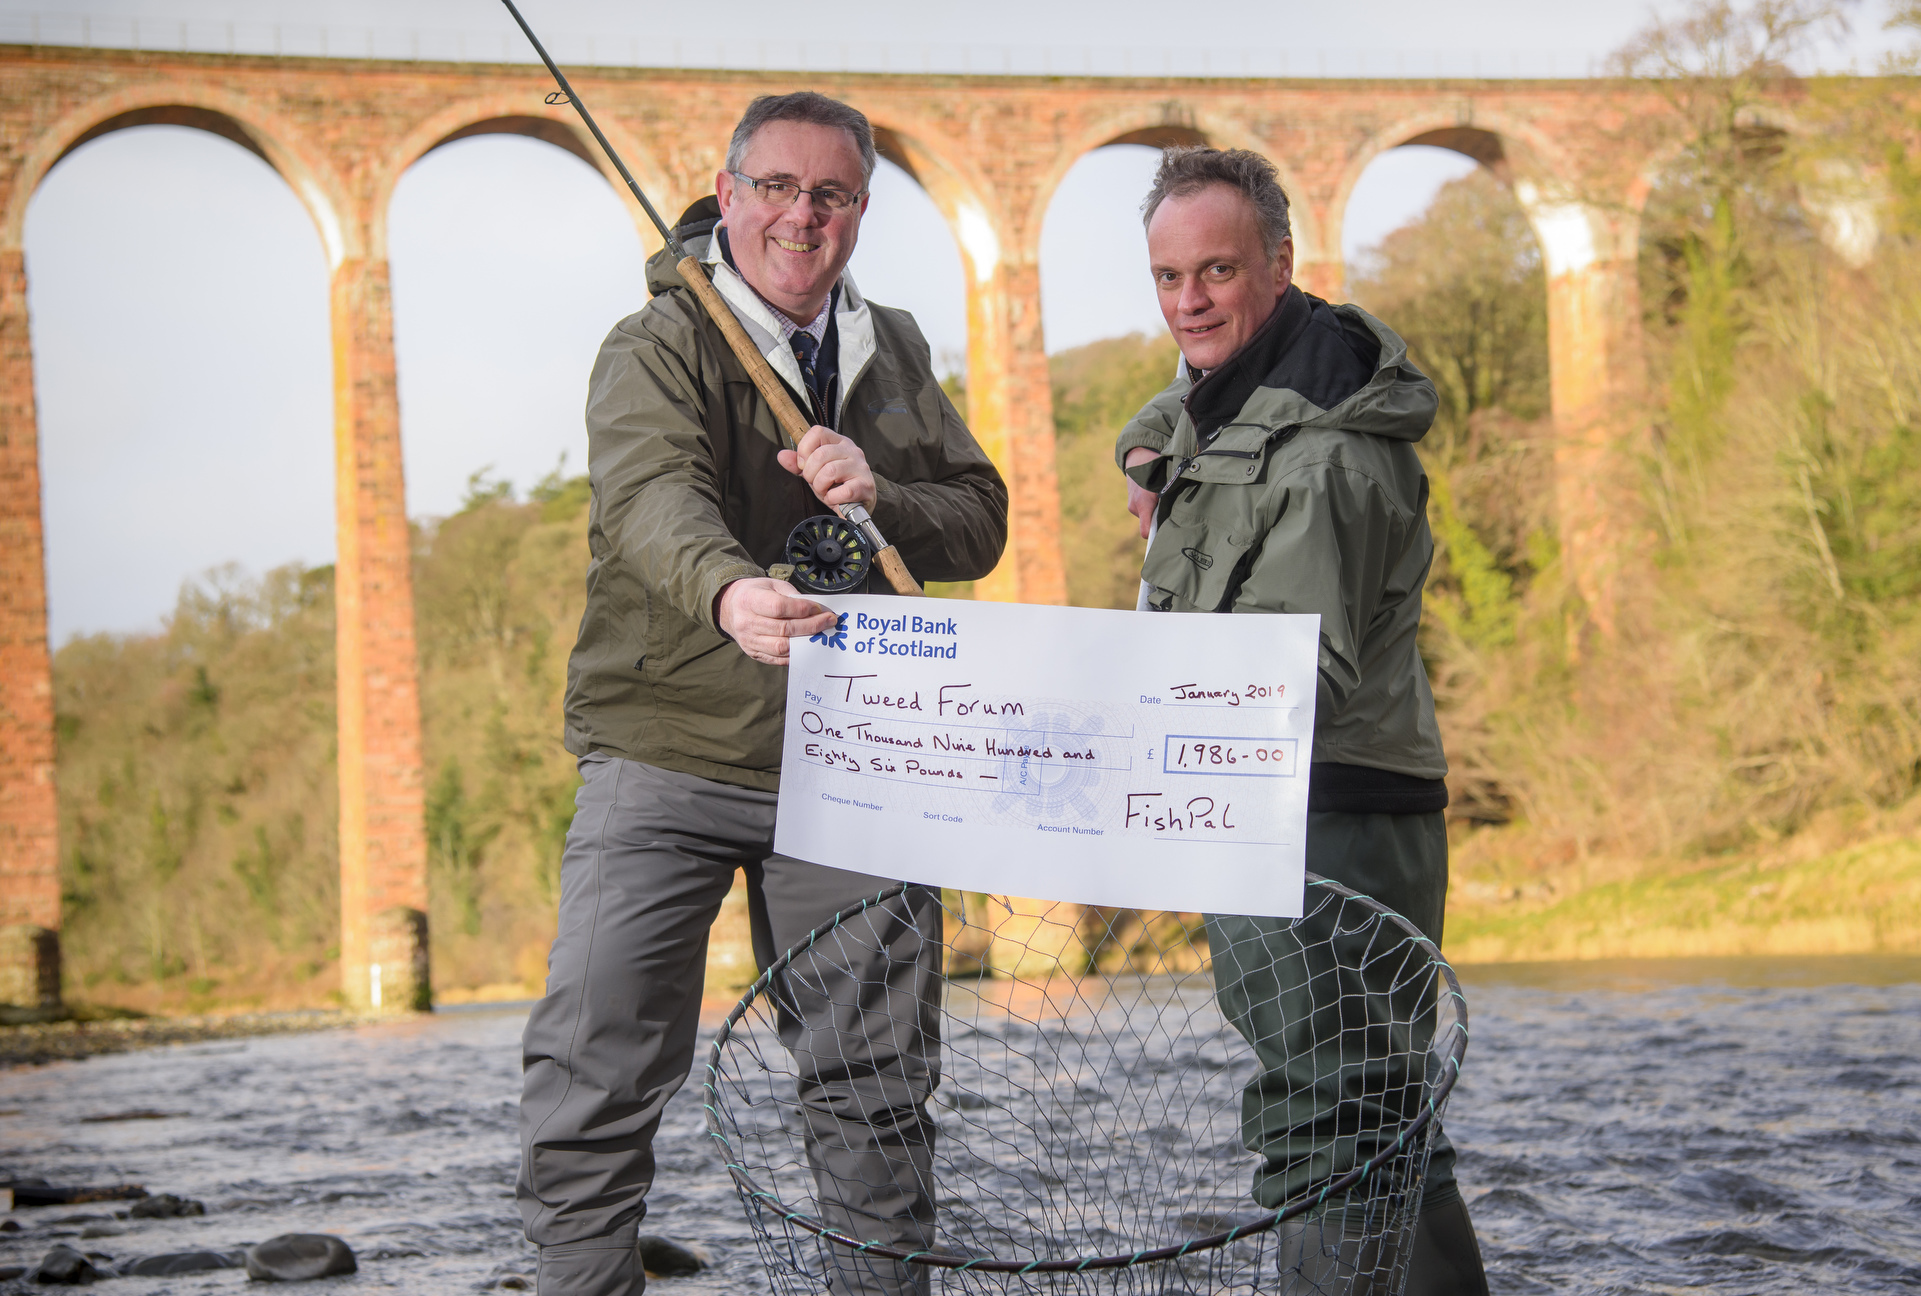 Mark Cockburn, CEO FishPal, presents Luke Comins, Director, Tweed Forum, with a £1,986 donation from anglers who fish on the River Tweed. Photo: Phil Wilkinson